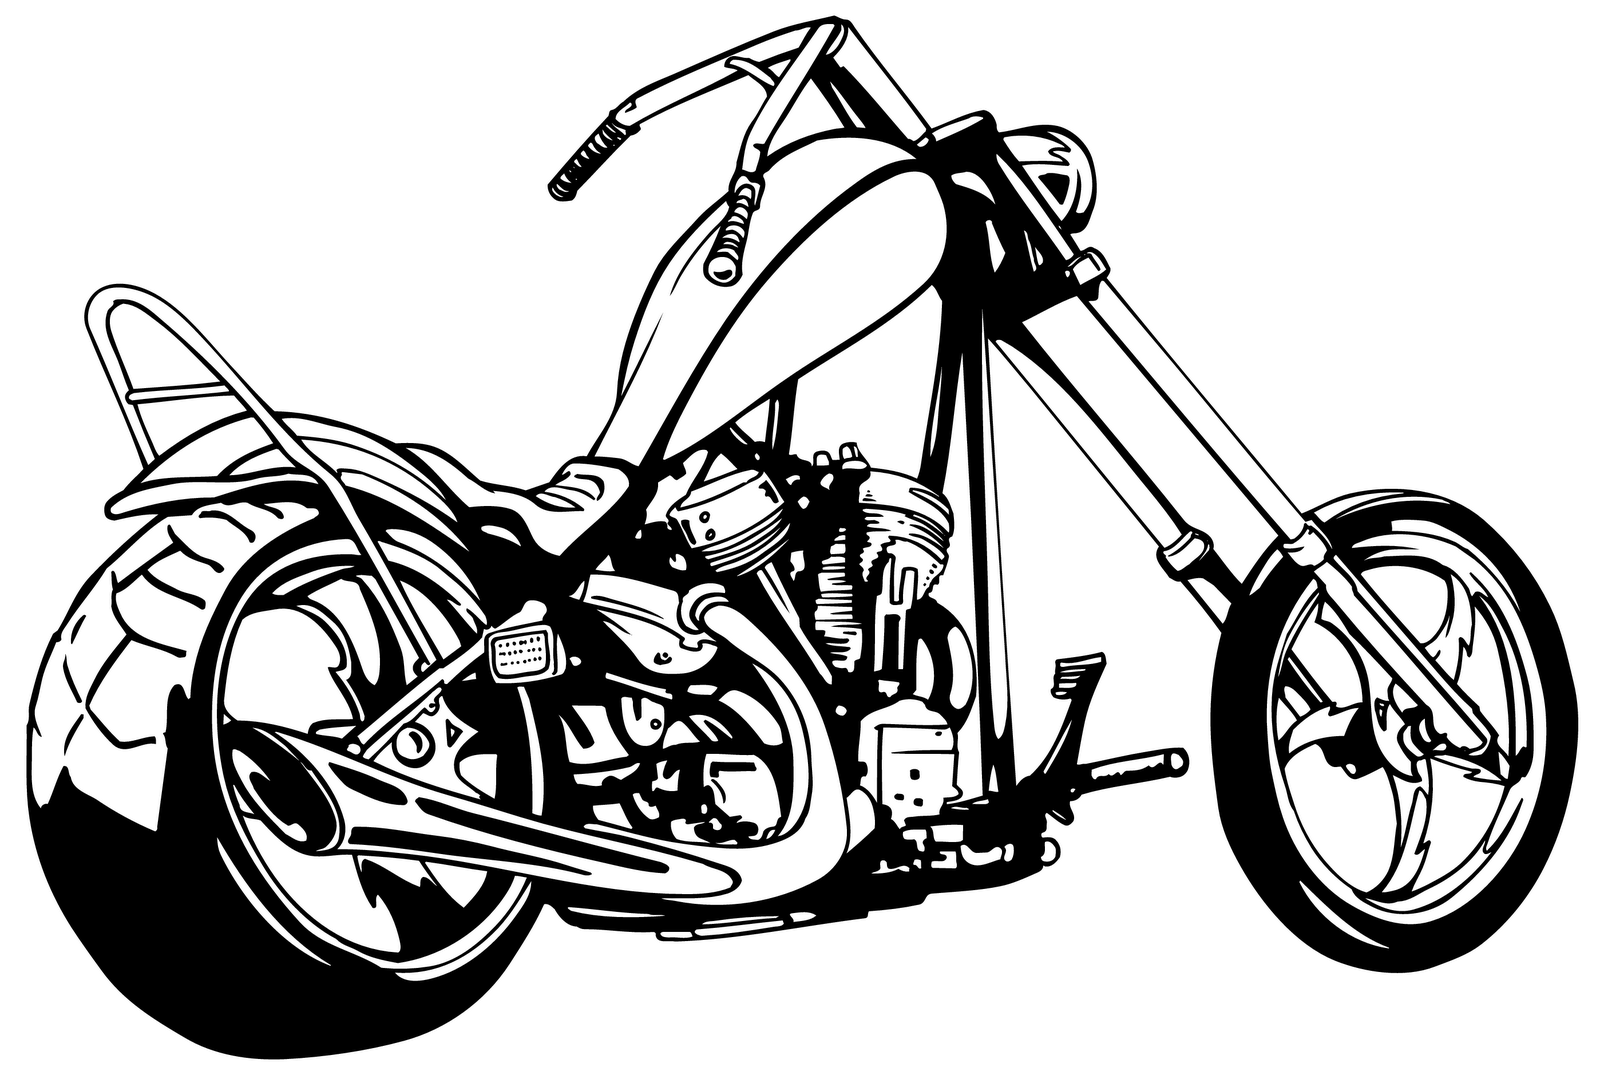 Historic motorcycle clipart #8